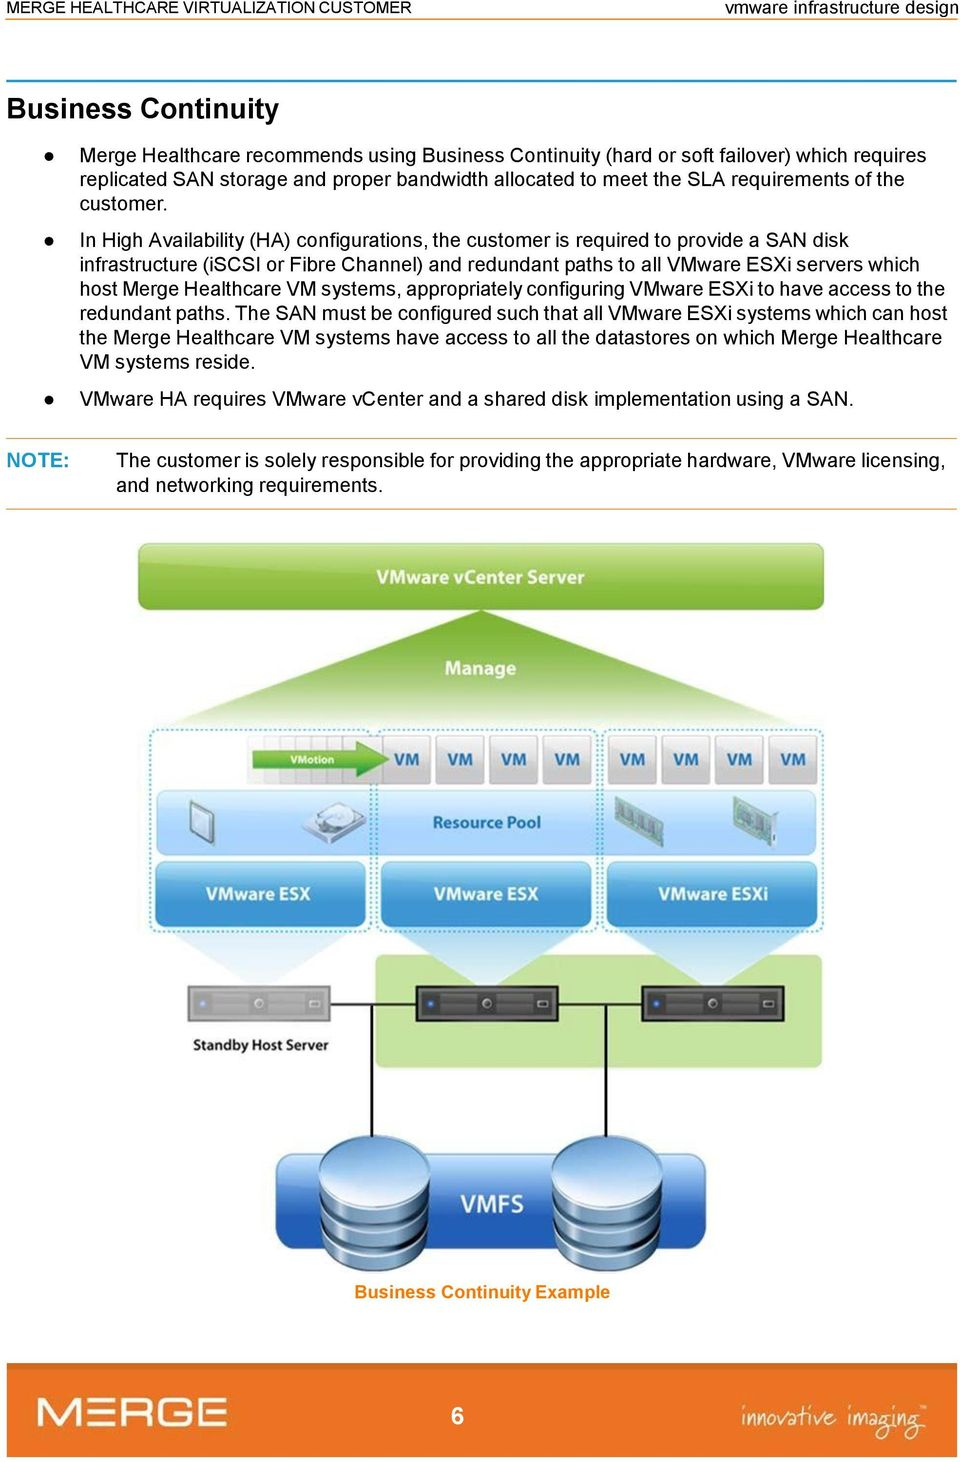 In High Availability (HA) configurations, the customer is required to provide a SAN disk infrastructure (iscsi or Fibre Channel) and redundant paths to all VMware ESXi servers which host Merge